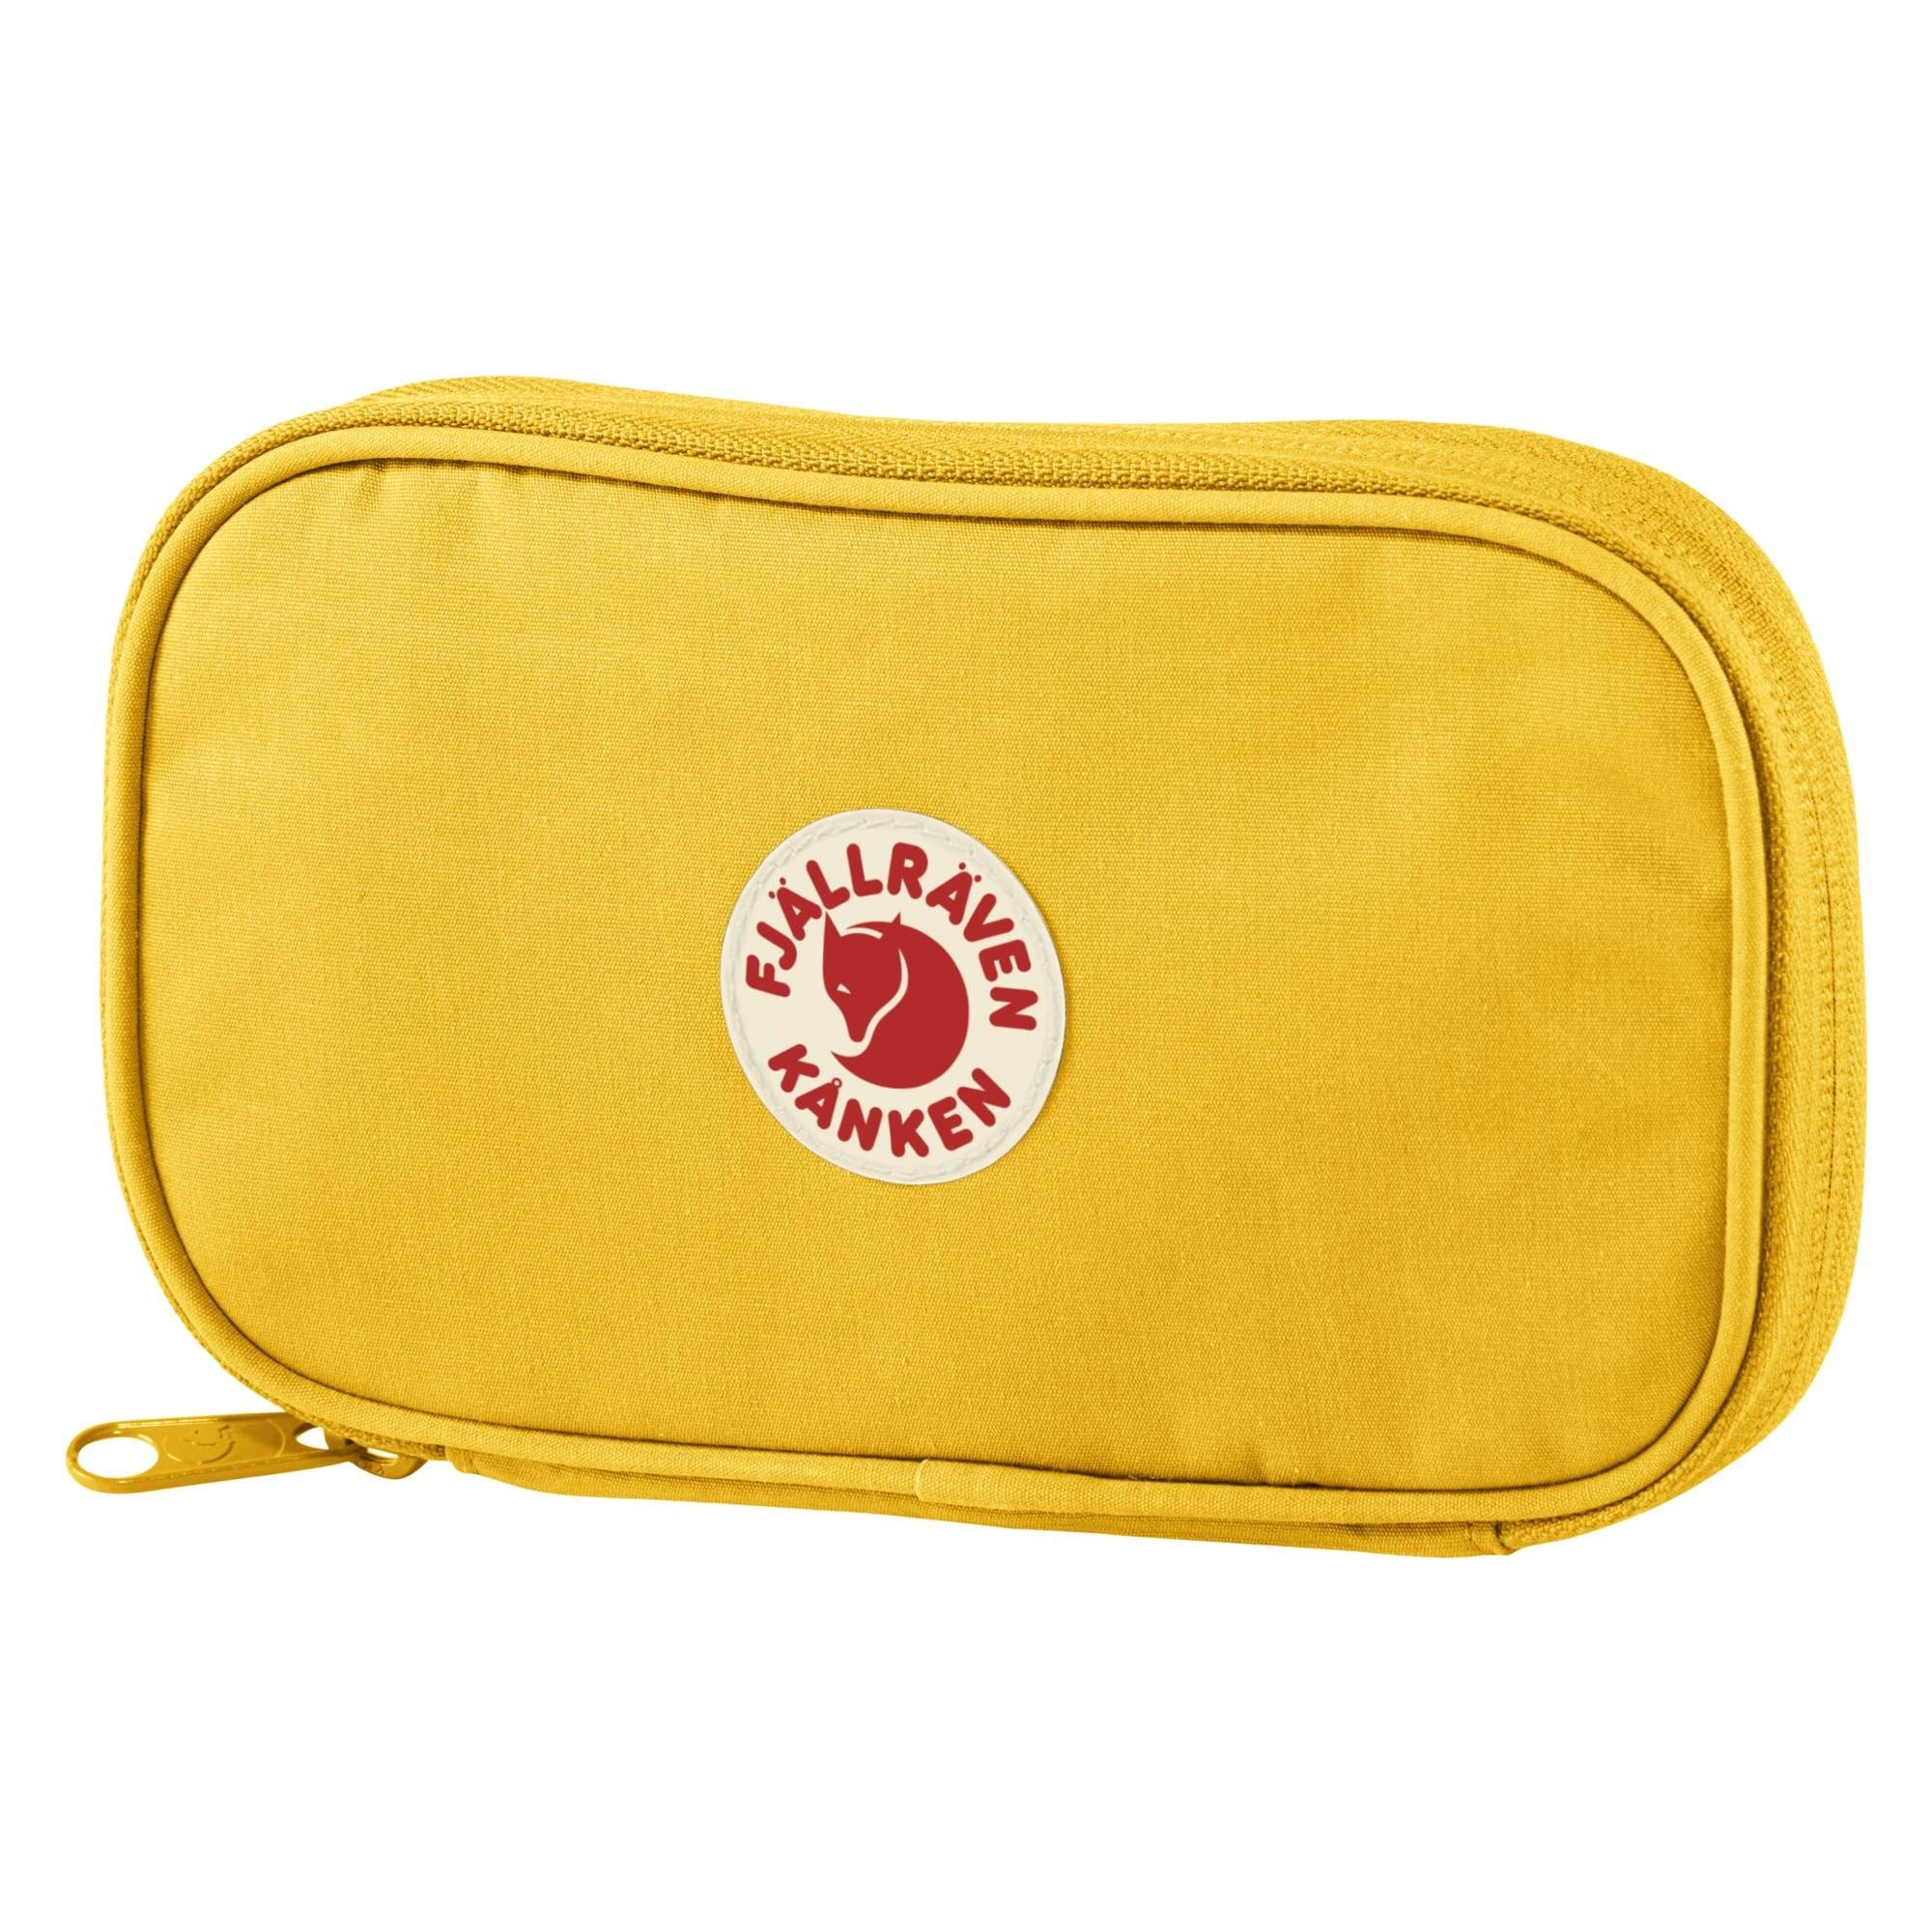 Fjallraven Kanken Travel Wallet - Warm Yellow